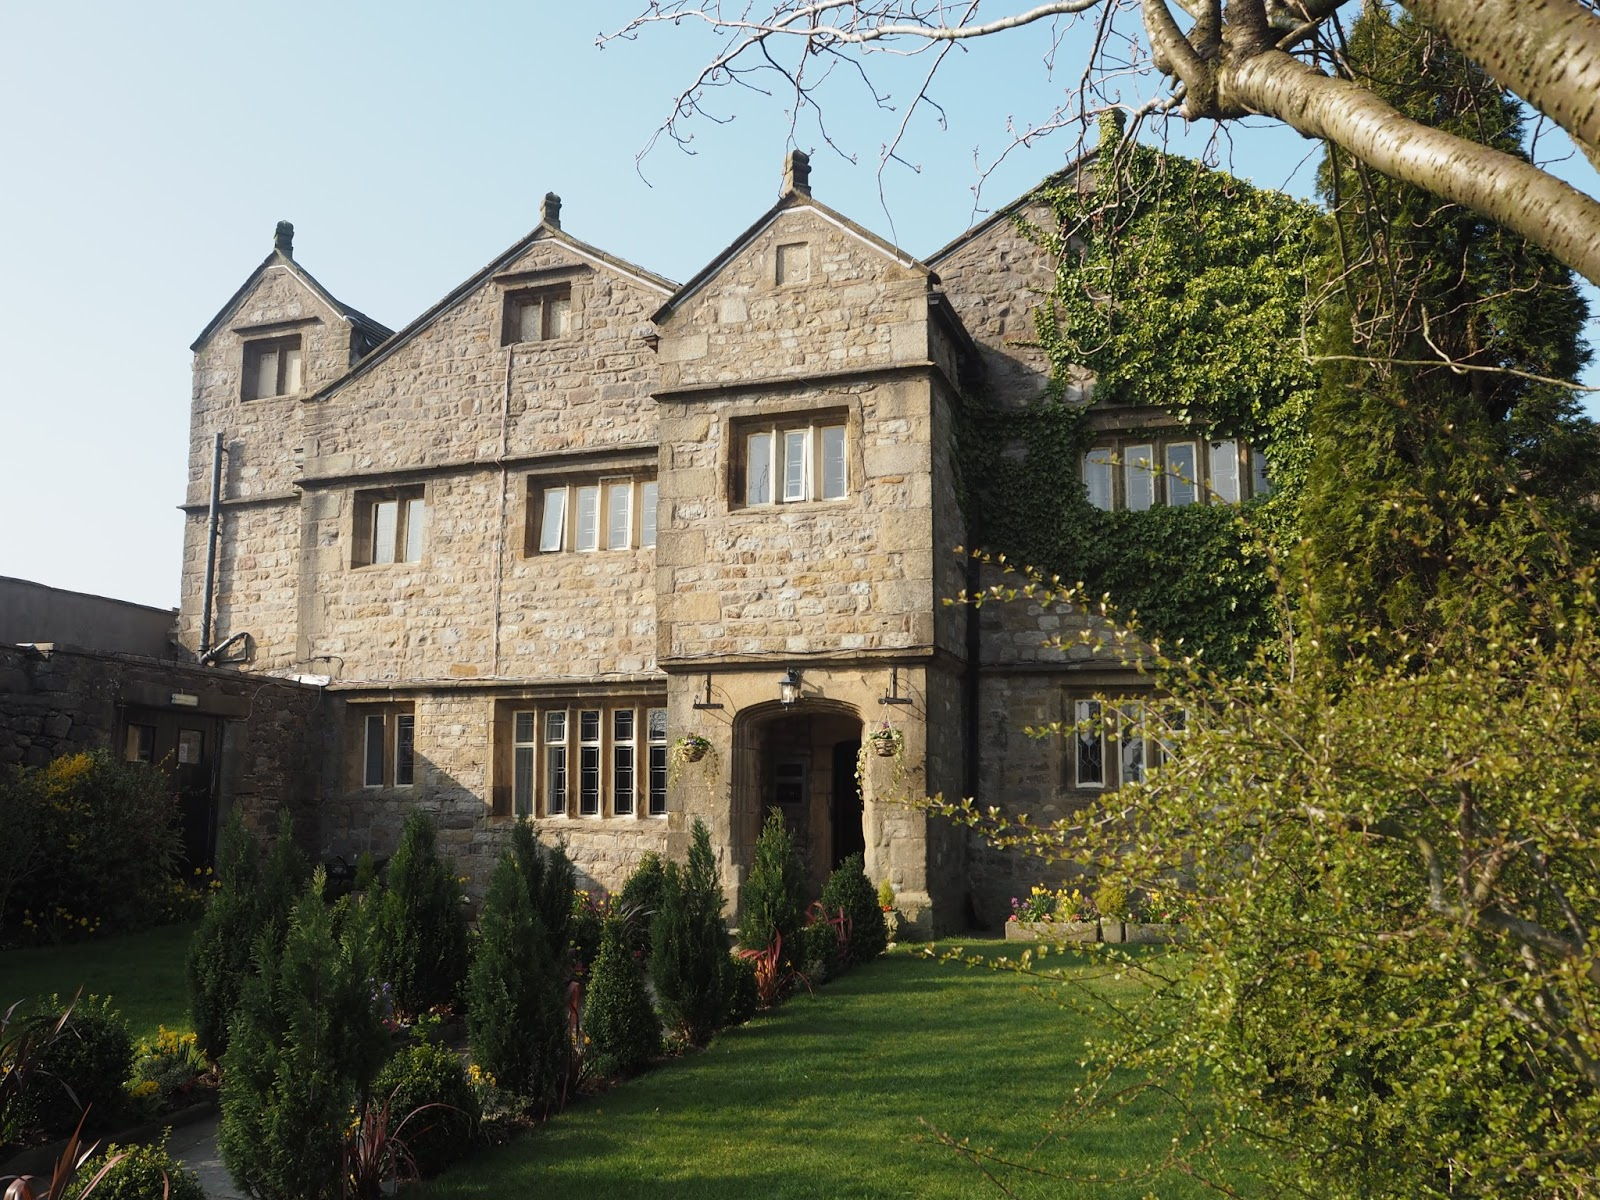 A review of Stirk House, Gisburn